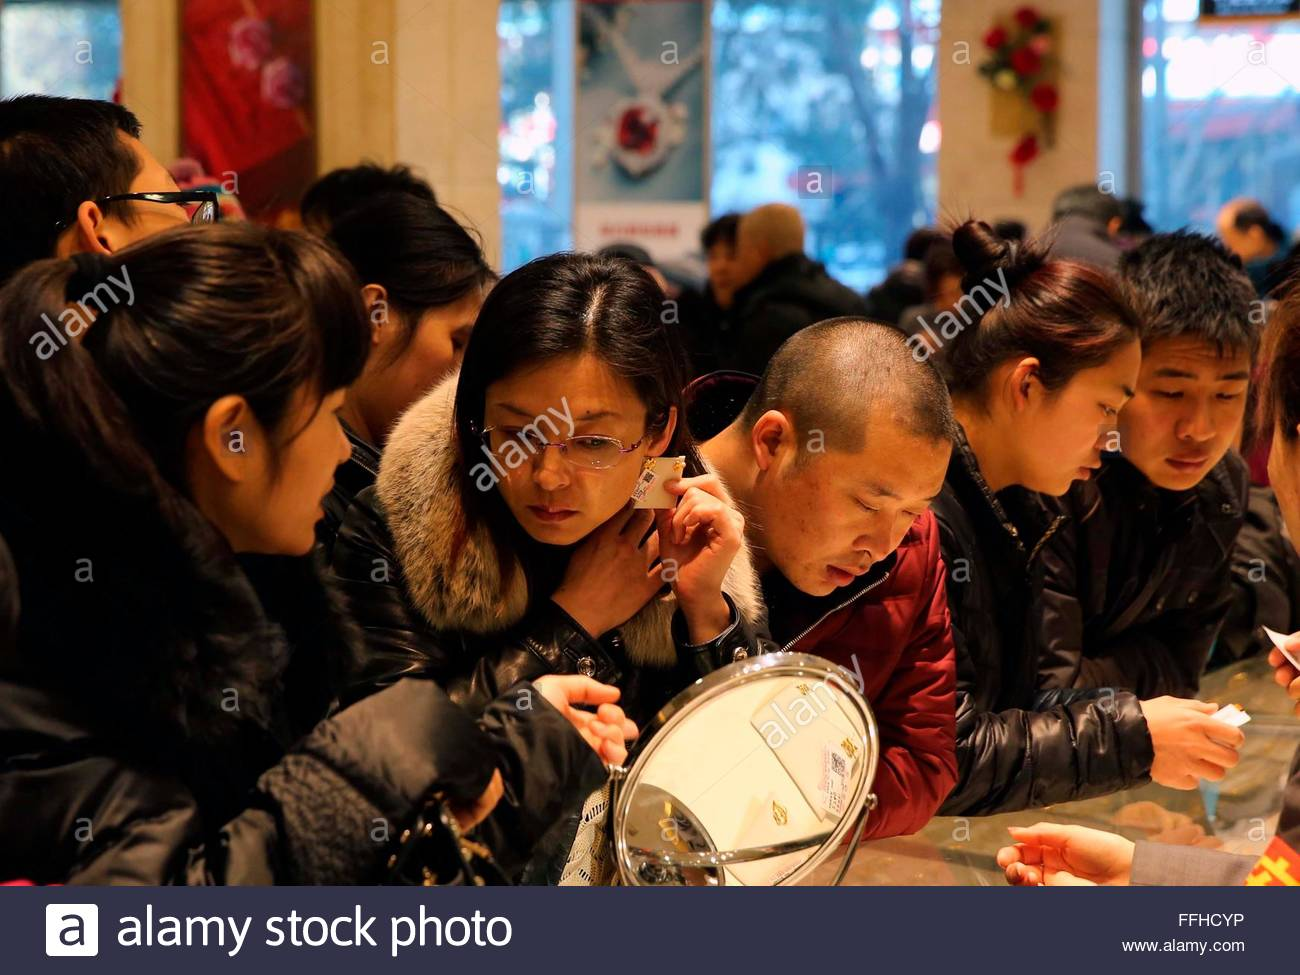 Marriage ornaments - People Crowded To Choose And Buy Gold Ornaments Especially For Marriage In Beijing China On Valentines Day Credit Top Photo Corporation Alamy Live News